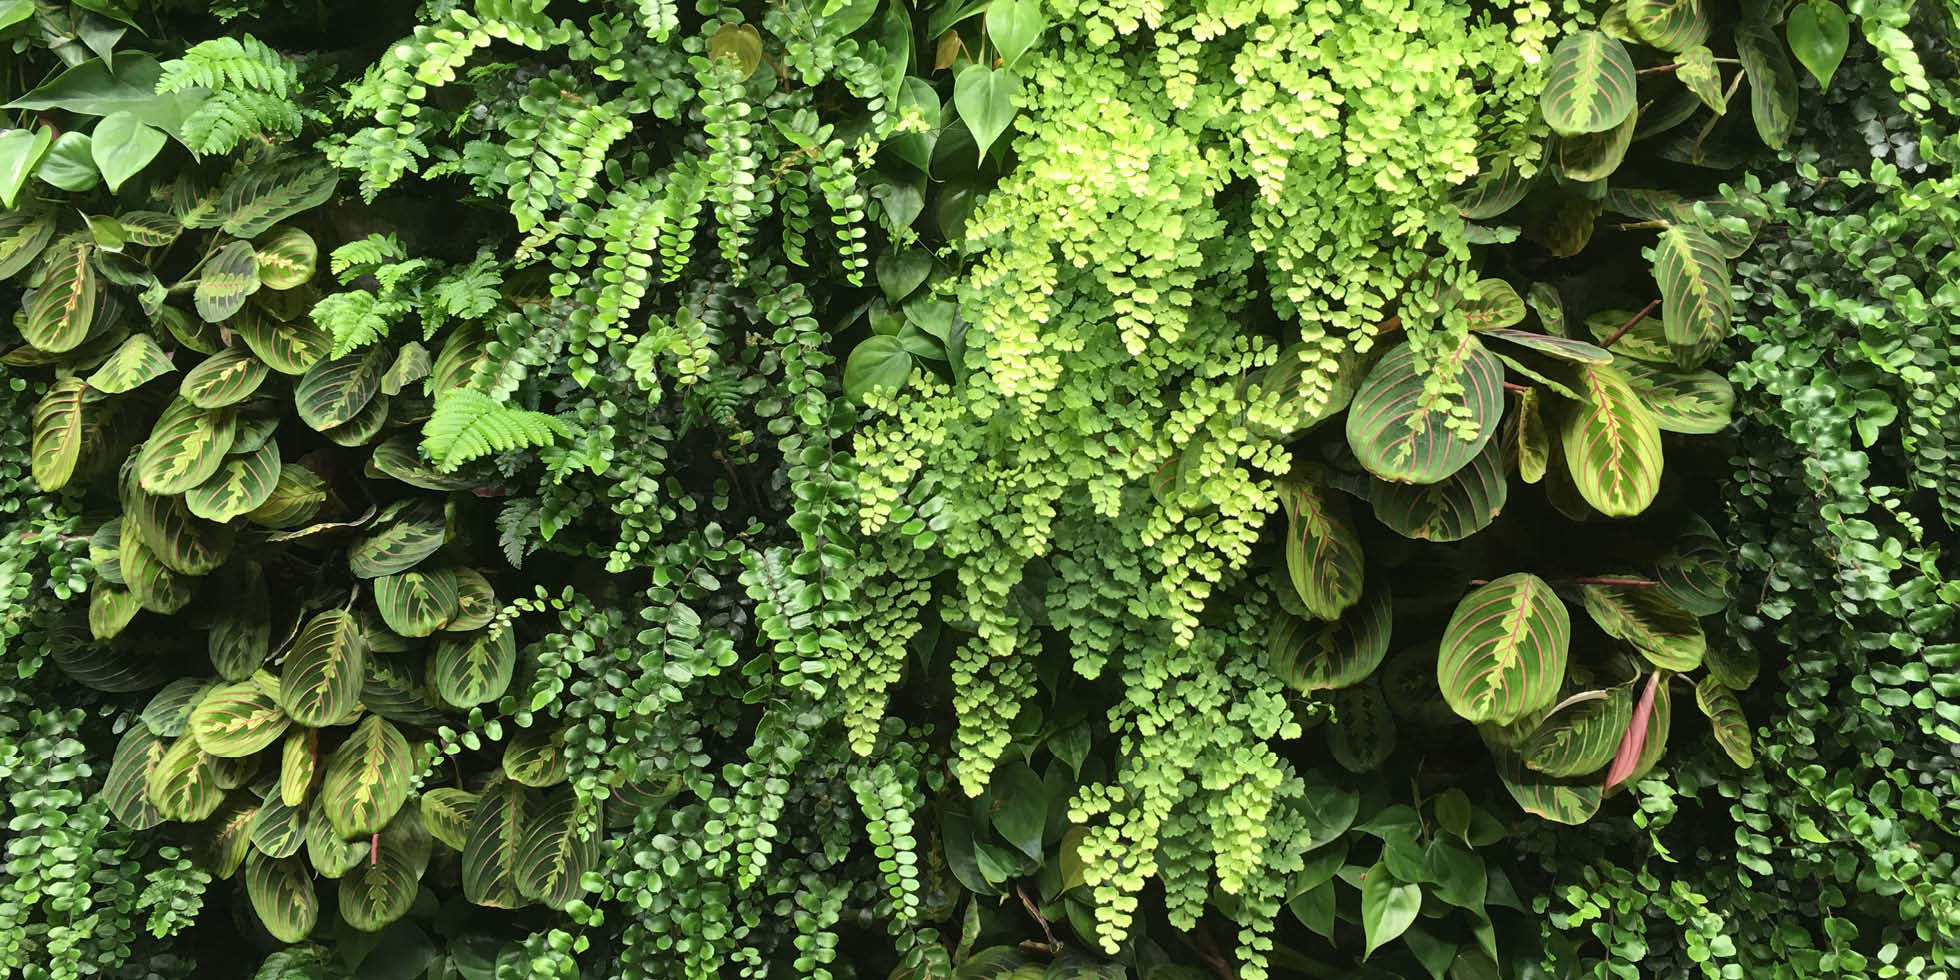 Arch|Nexus Living Wall by Habitat Horticulture - View 3